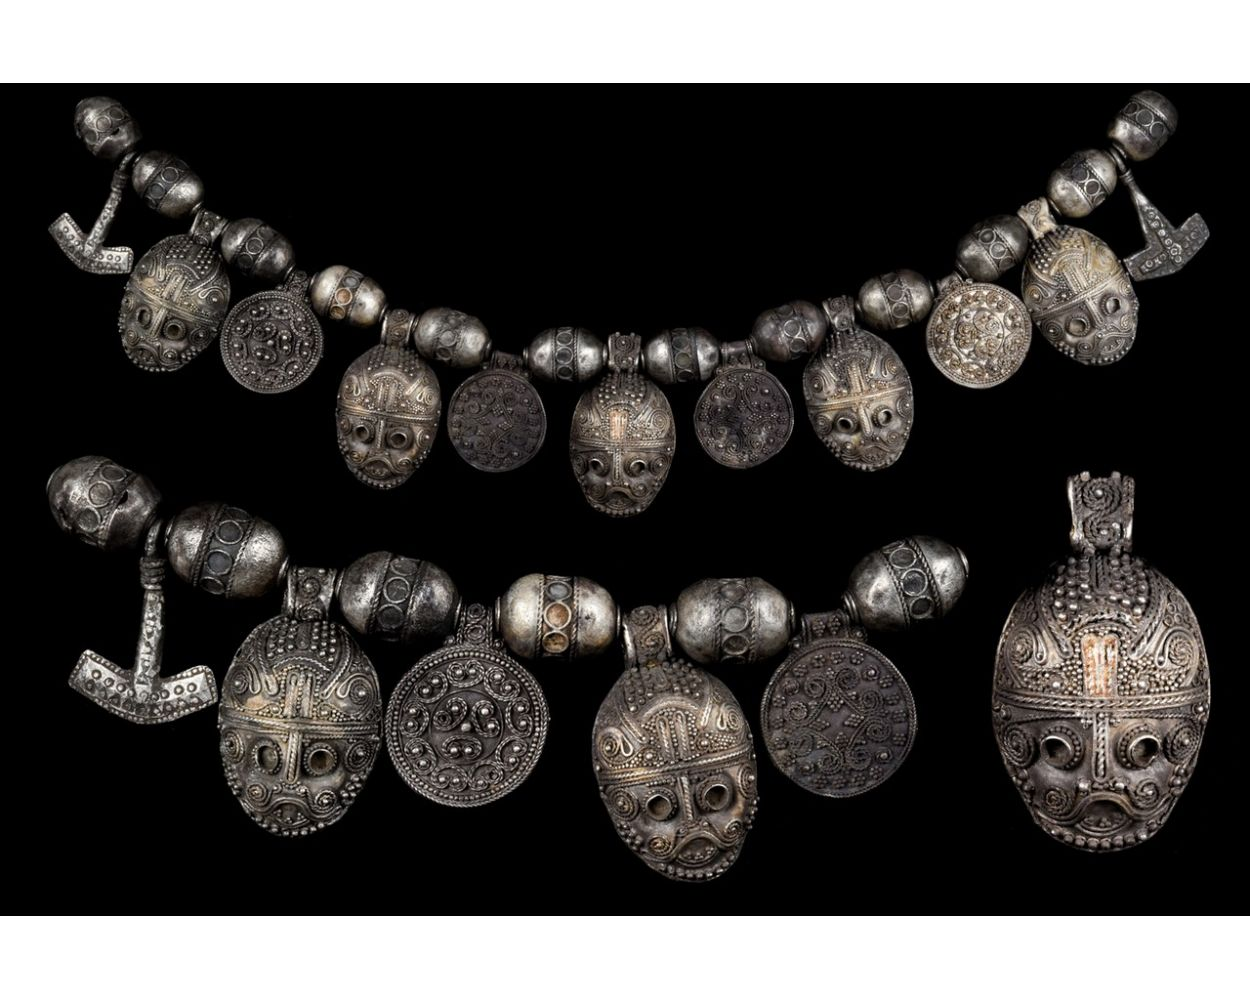 ANTIQUITIES AND ANCIENT ART - Pax Romana Auctions